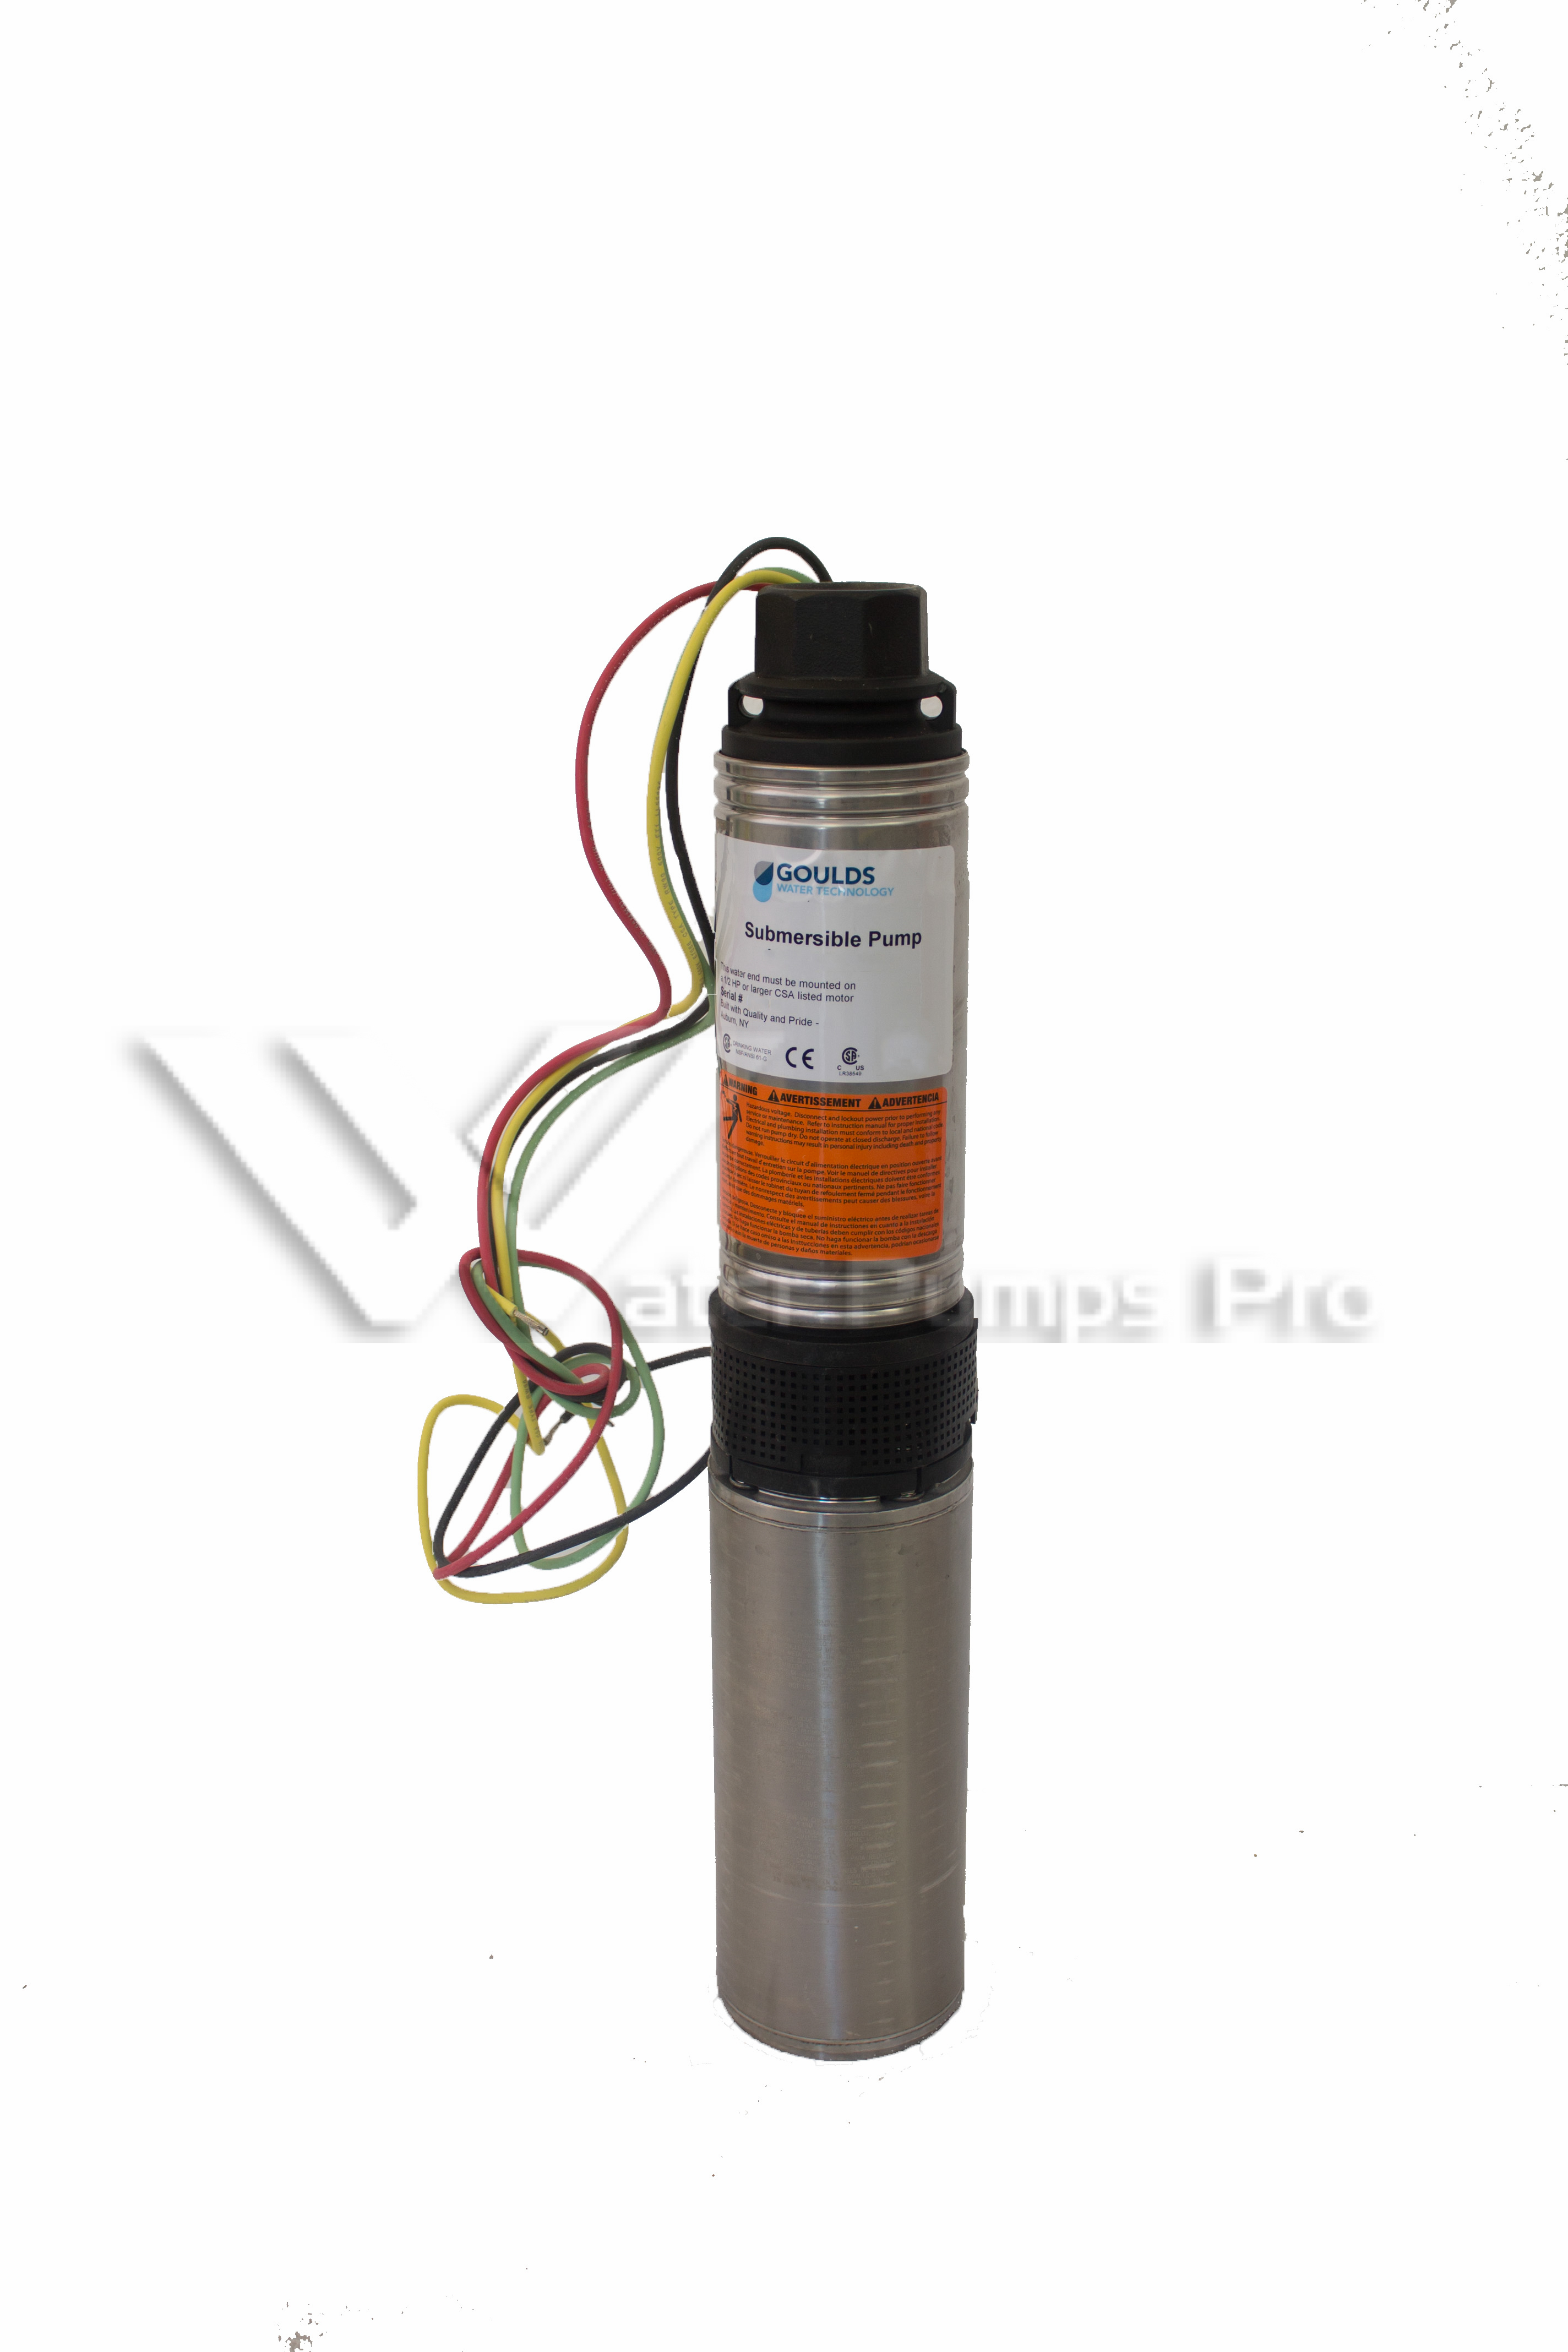 Goulds 10HS10412CL Submersible Water Well Pump 1HP 230V 3Wire